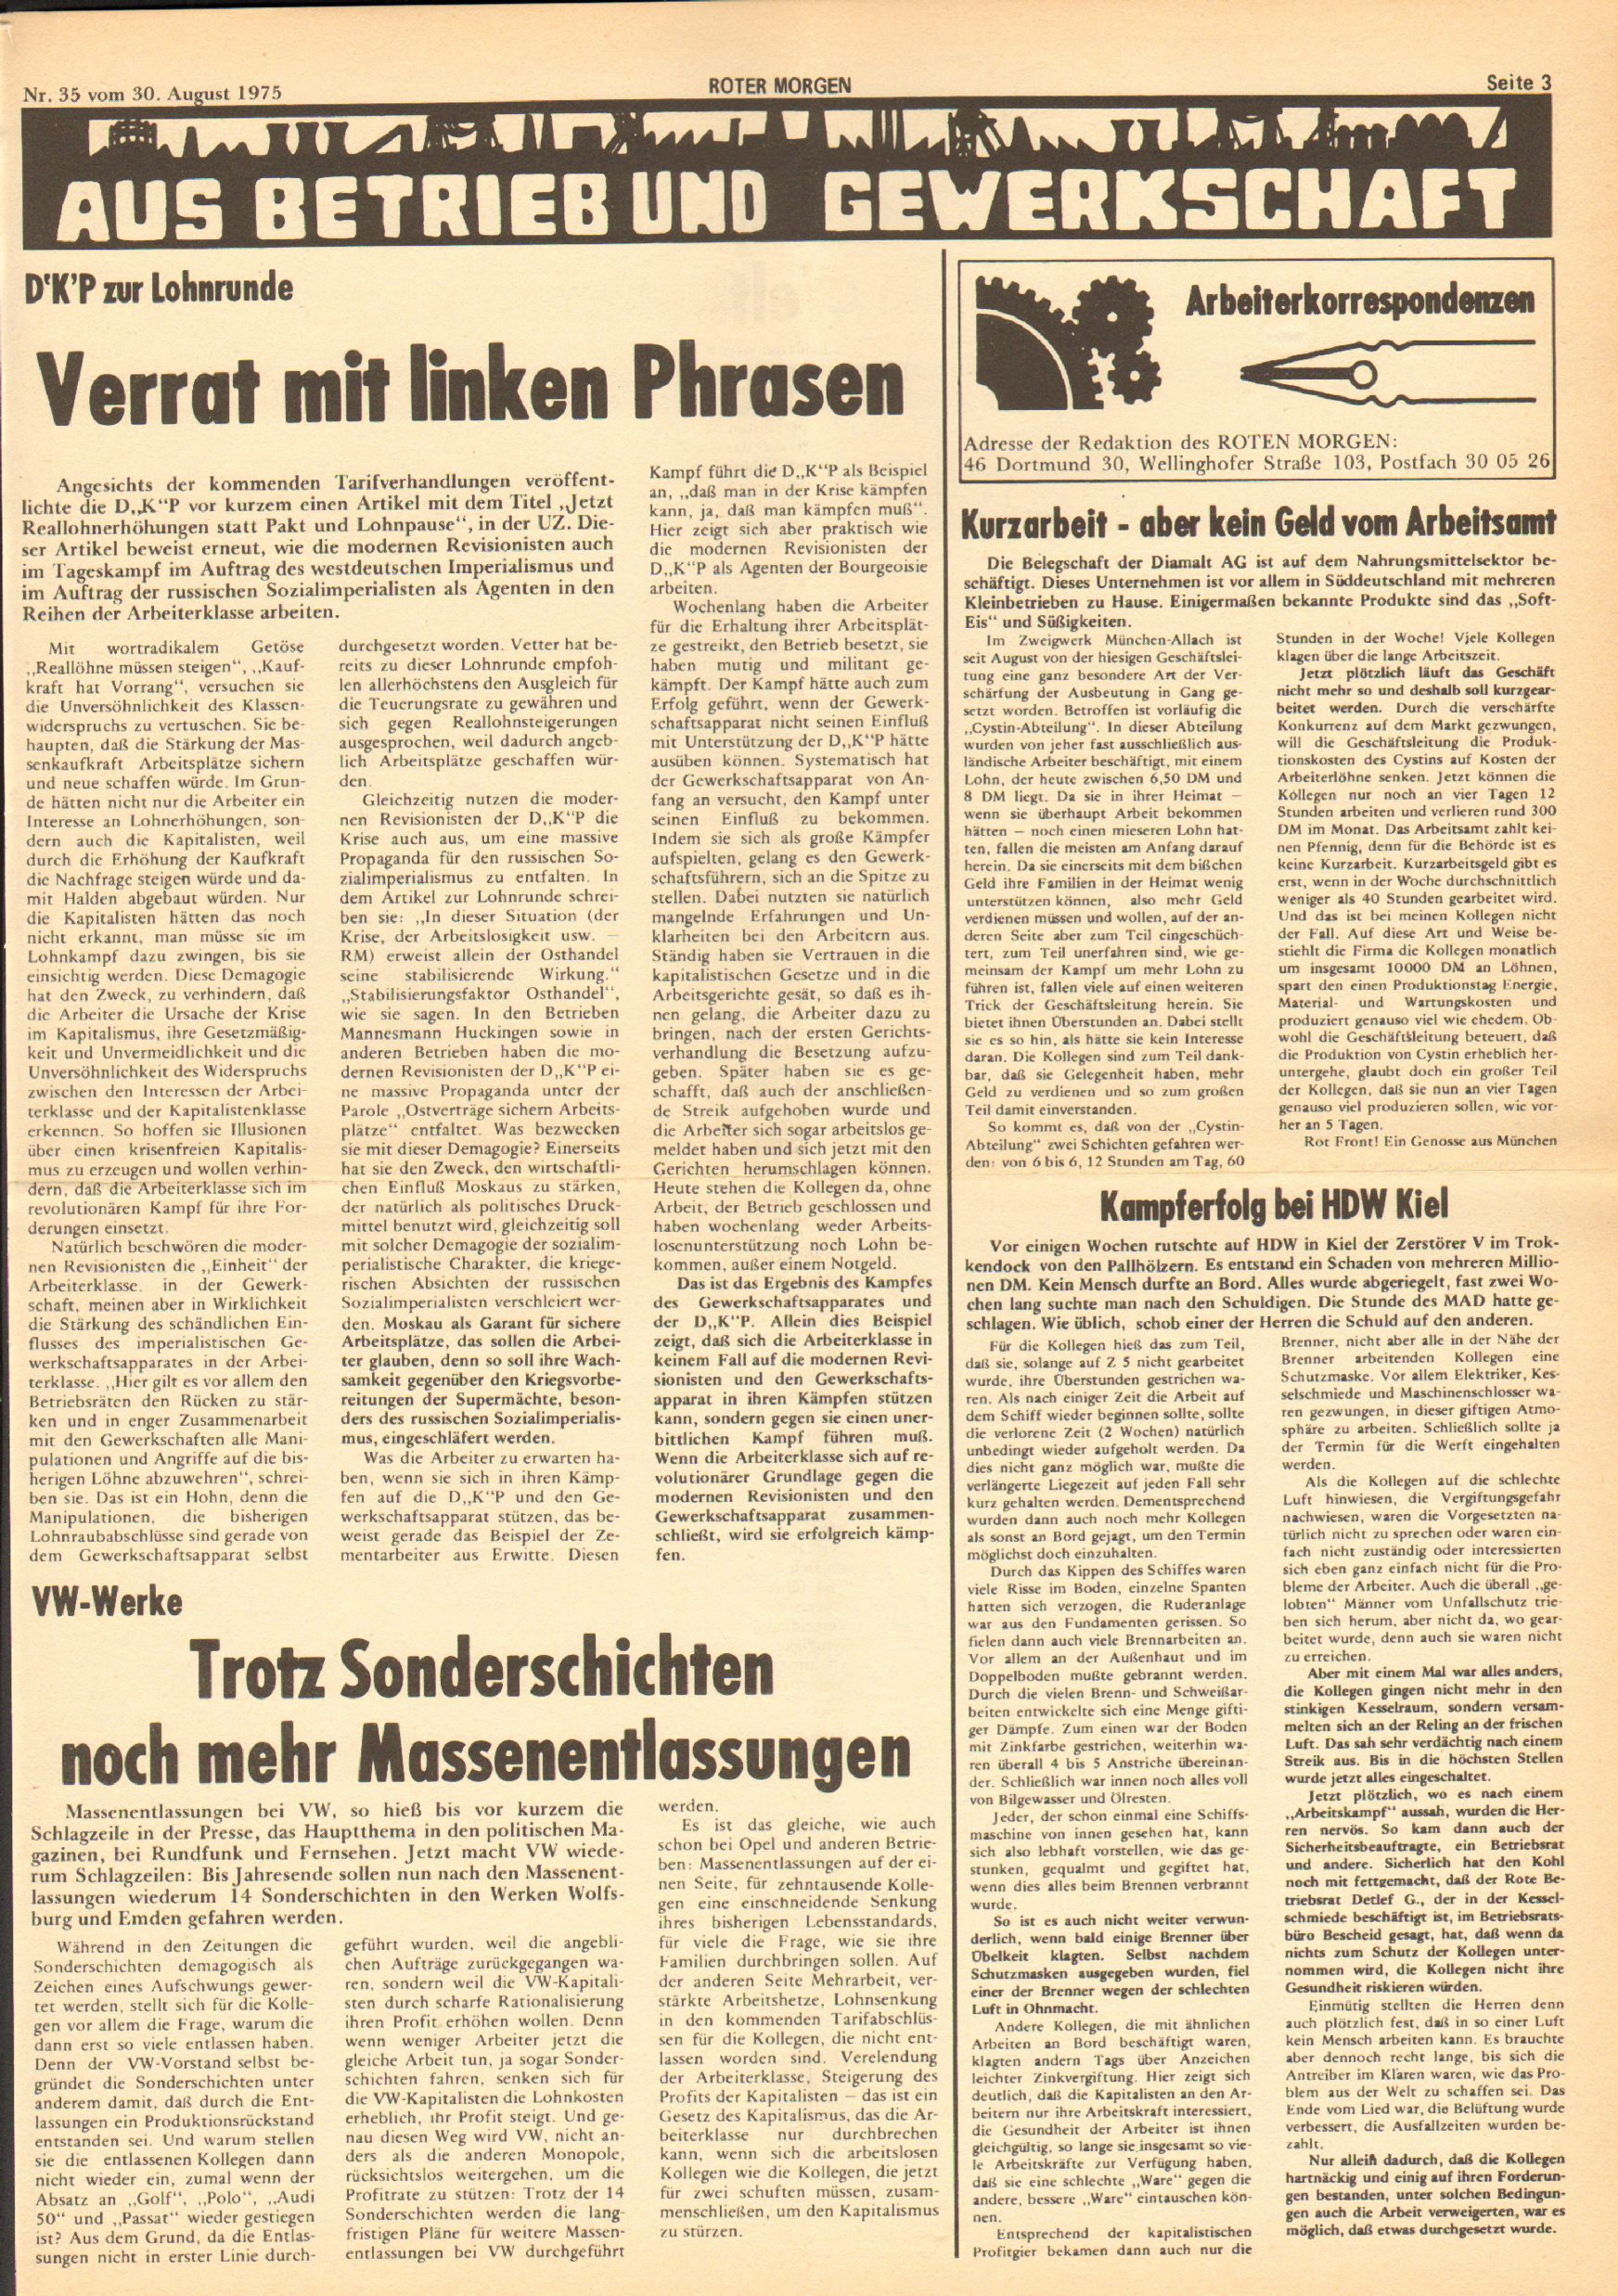 Roter Morgen, 9. Jg., 30. August 1975, Nr. 35, Seite 3